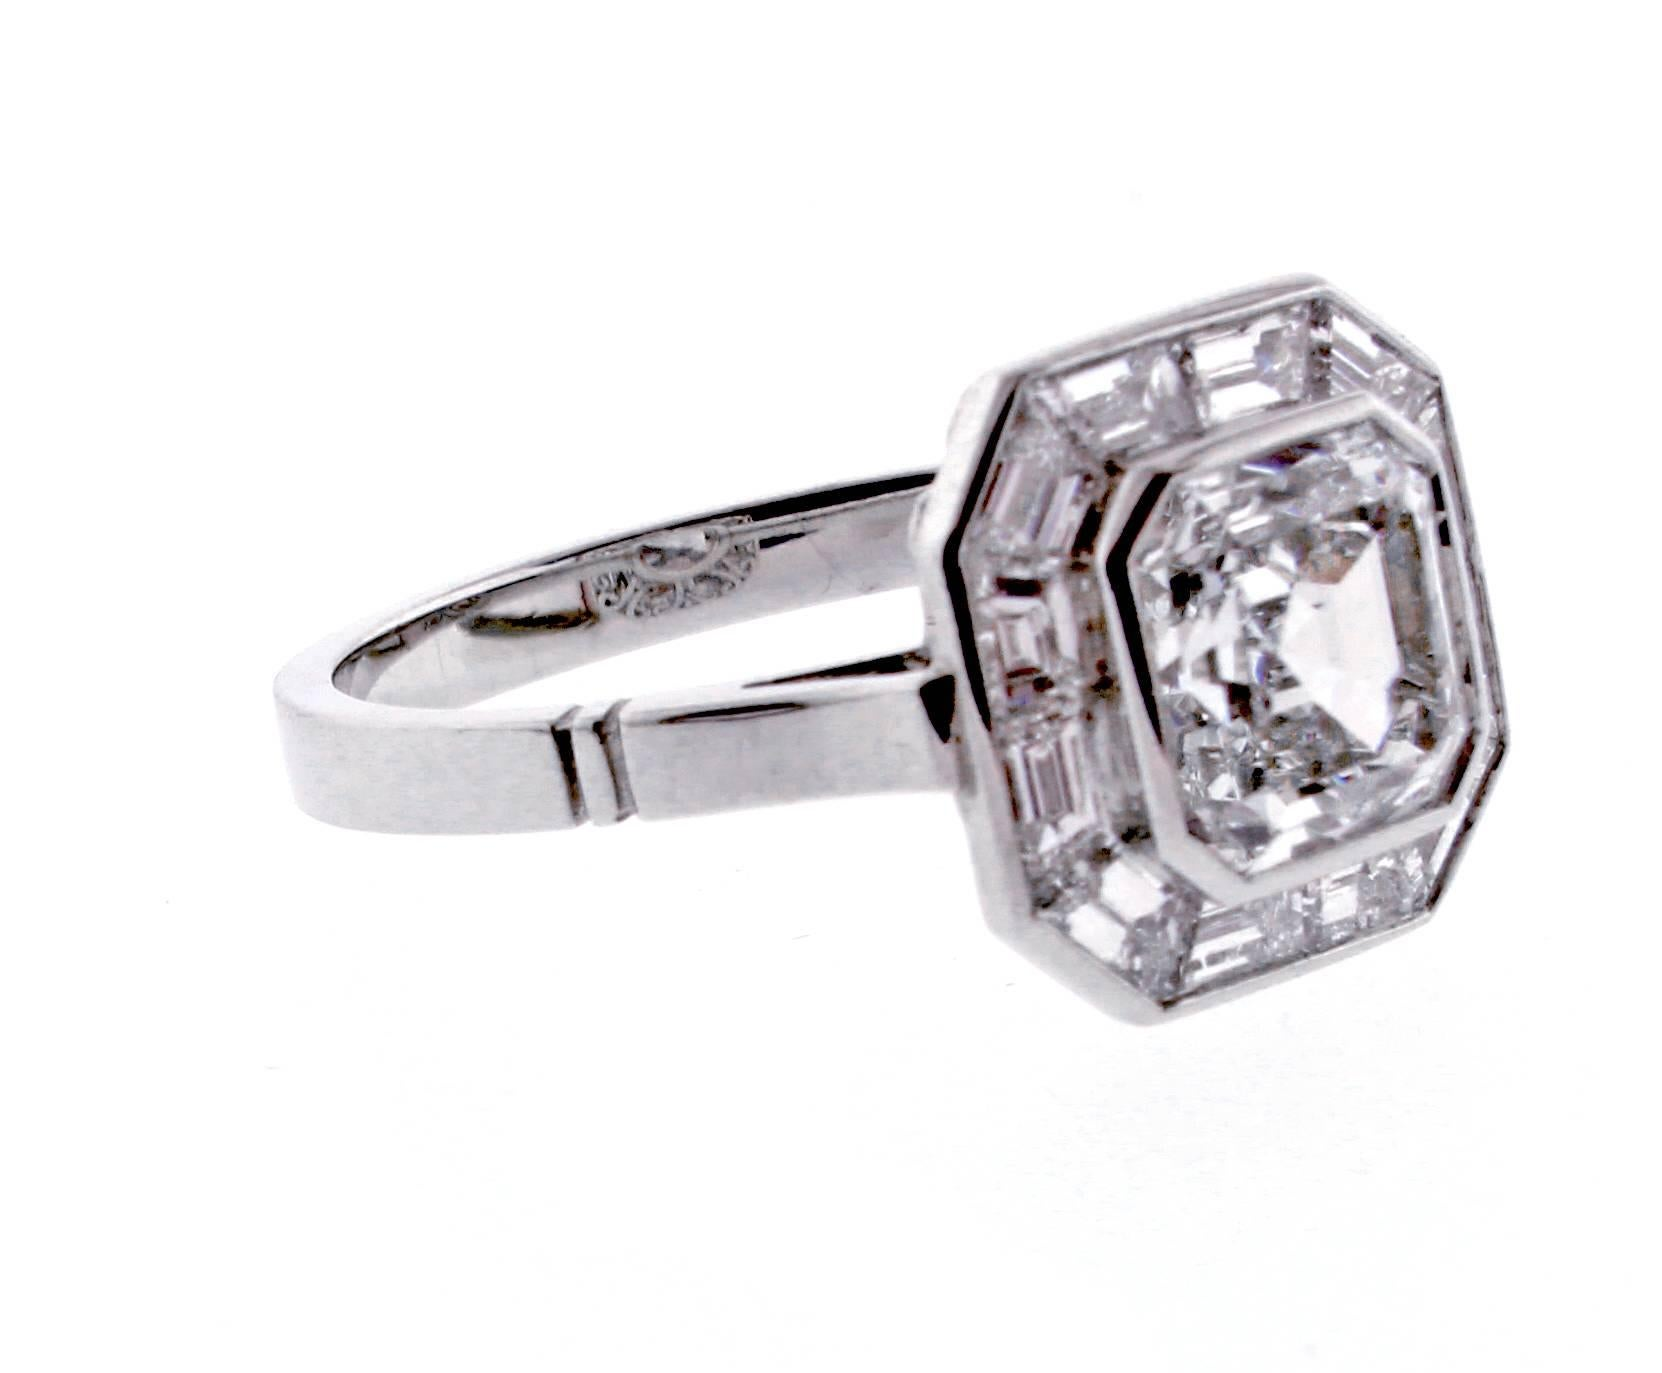 ring diamond jewelers product filigree in gold rings modern asscher engagement sold white cut